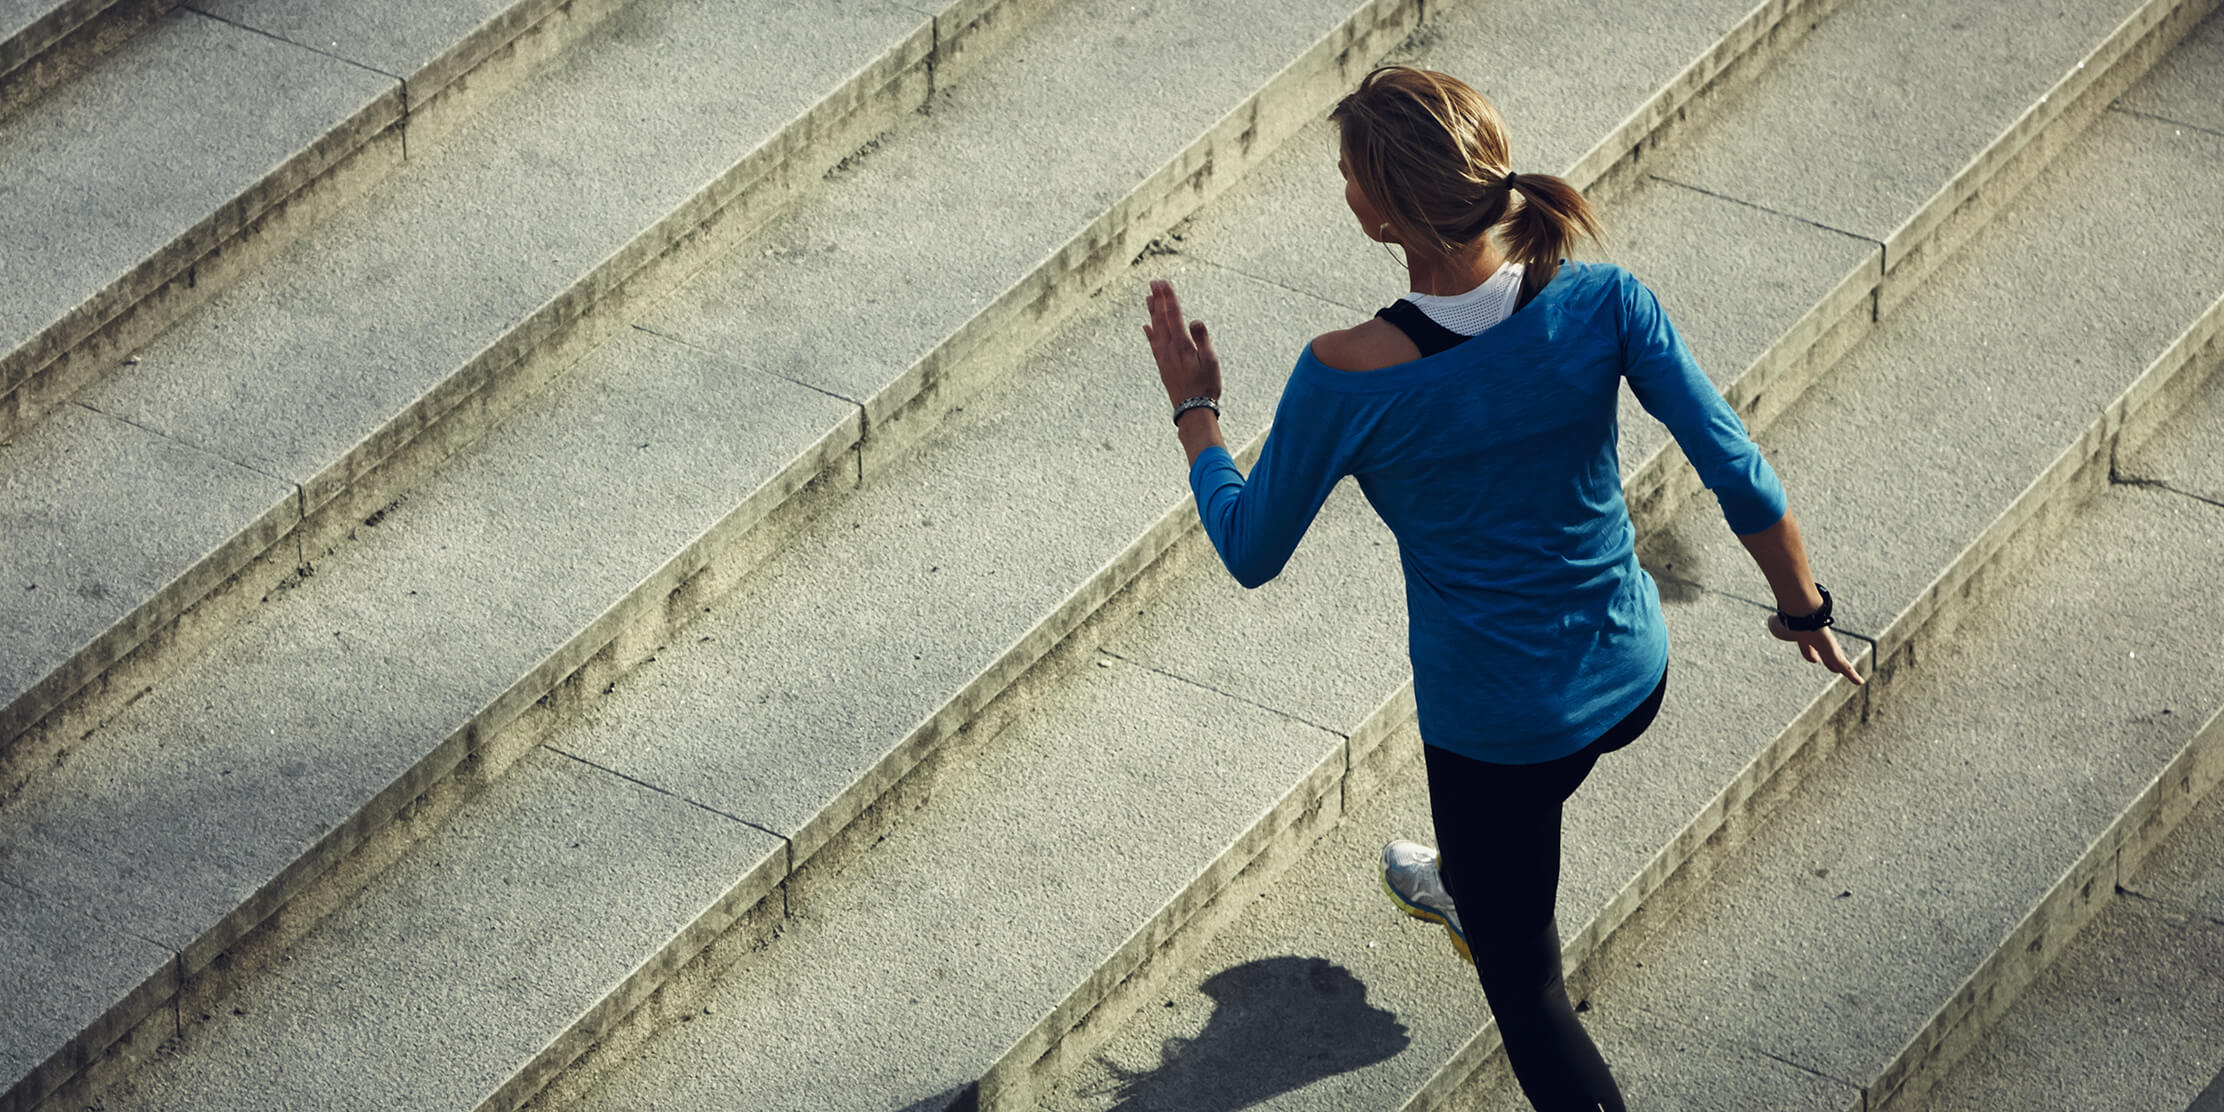 Photo for 7 simple stairway exercises for a healthier heart and body